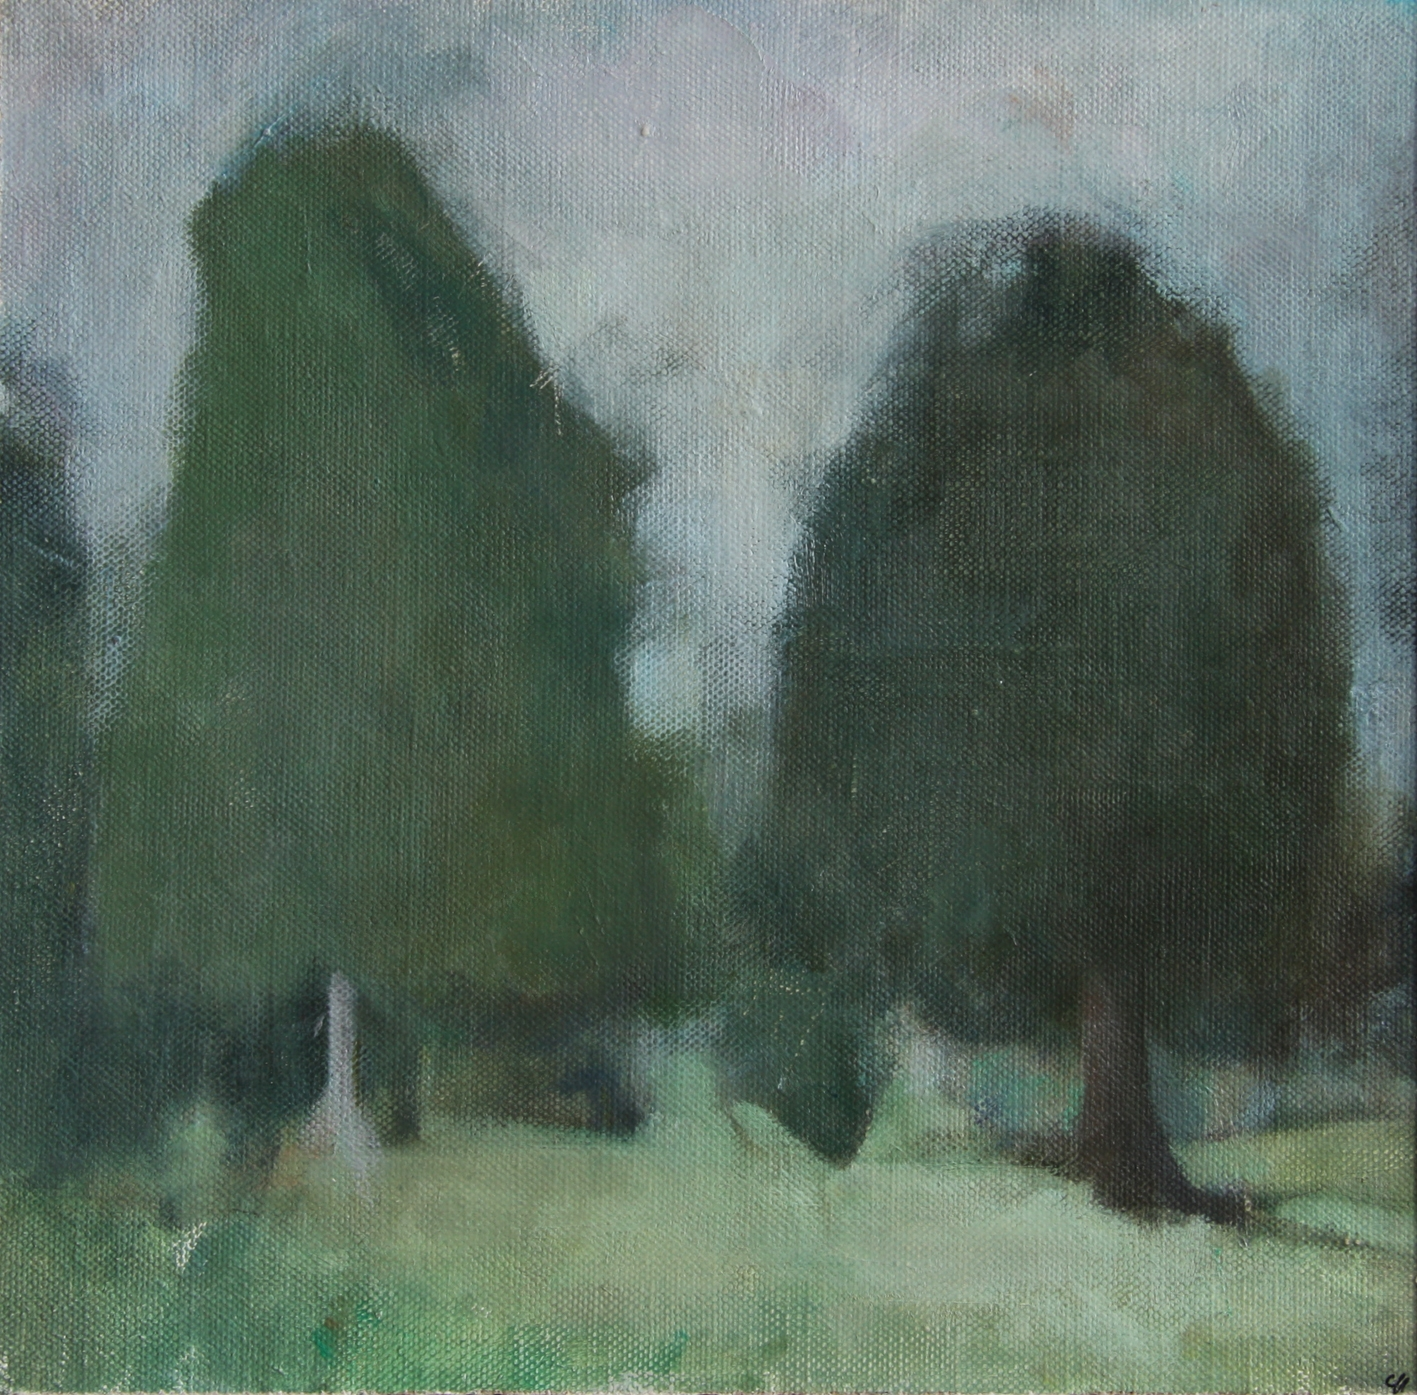 Untitled (Through the trees),2015,Oil on Linen,29 x 30 cm